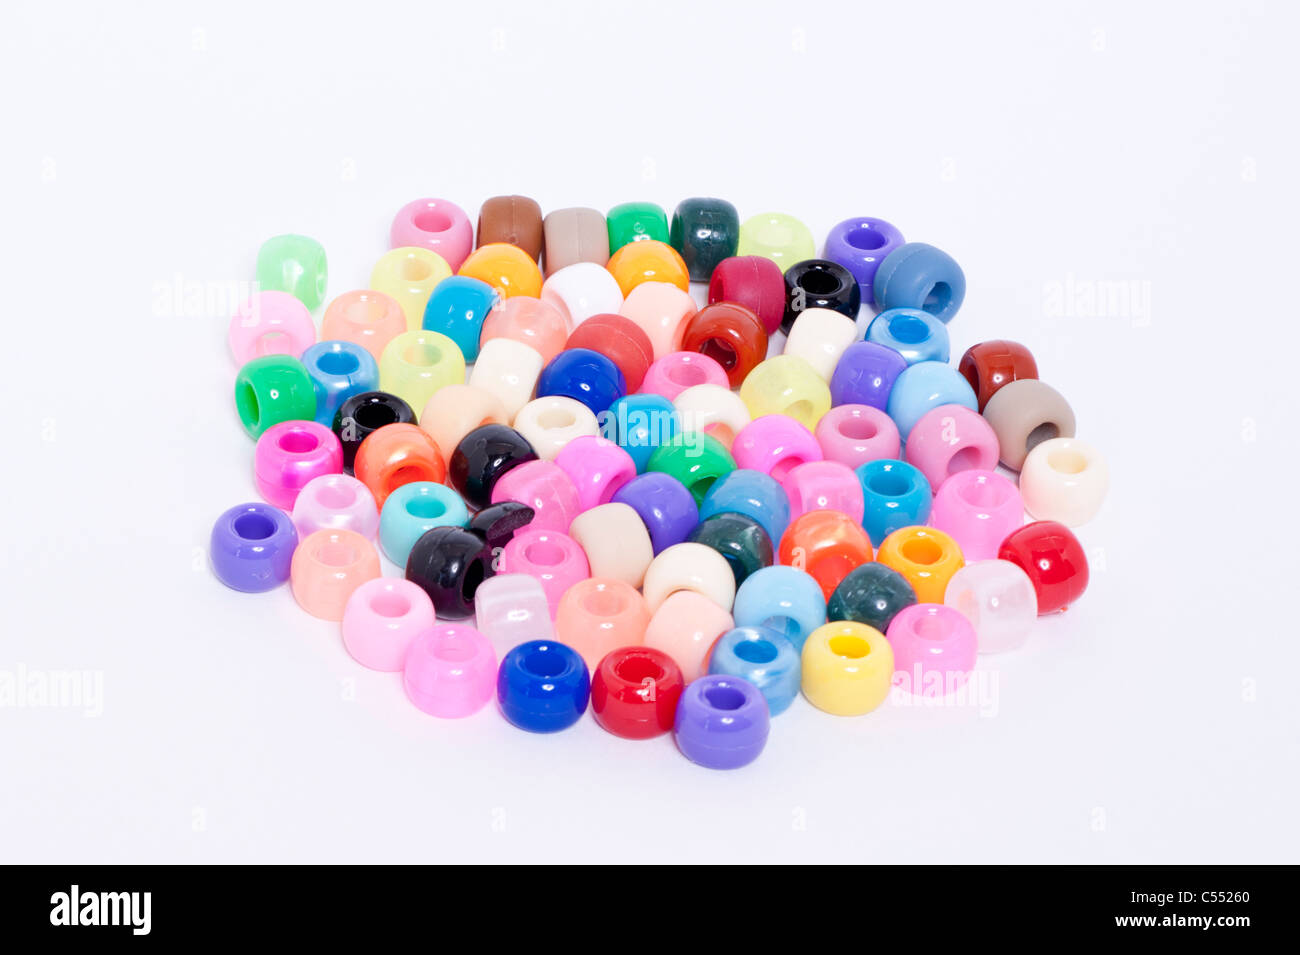 A selection of coloured beads on a white background - Stock Image